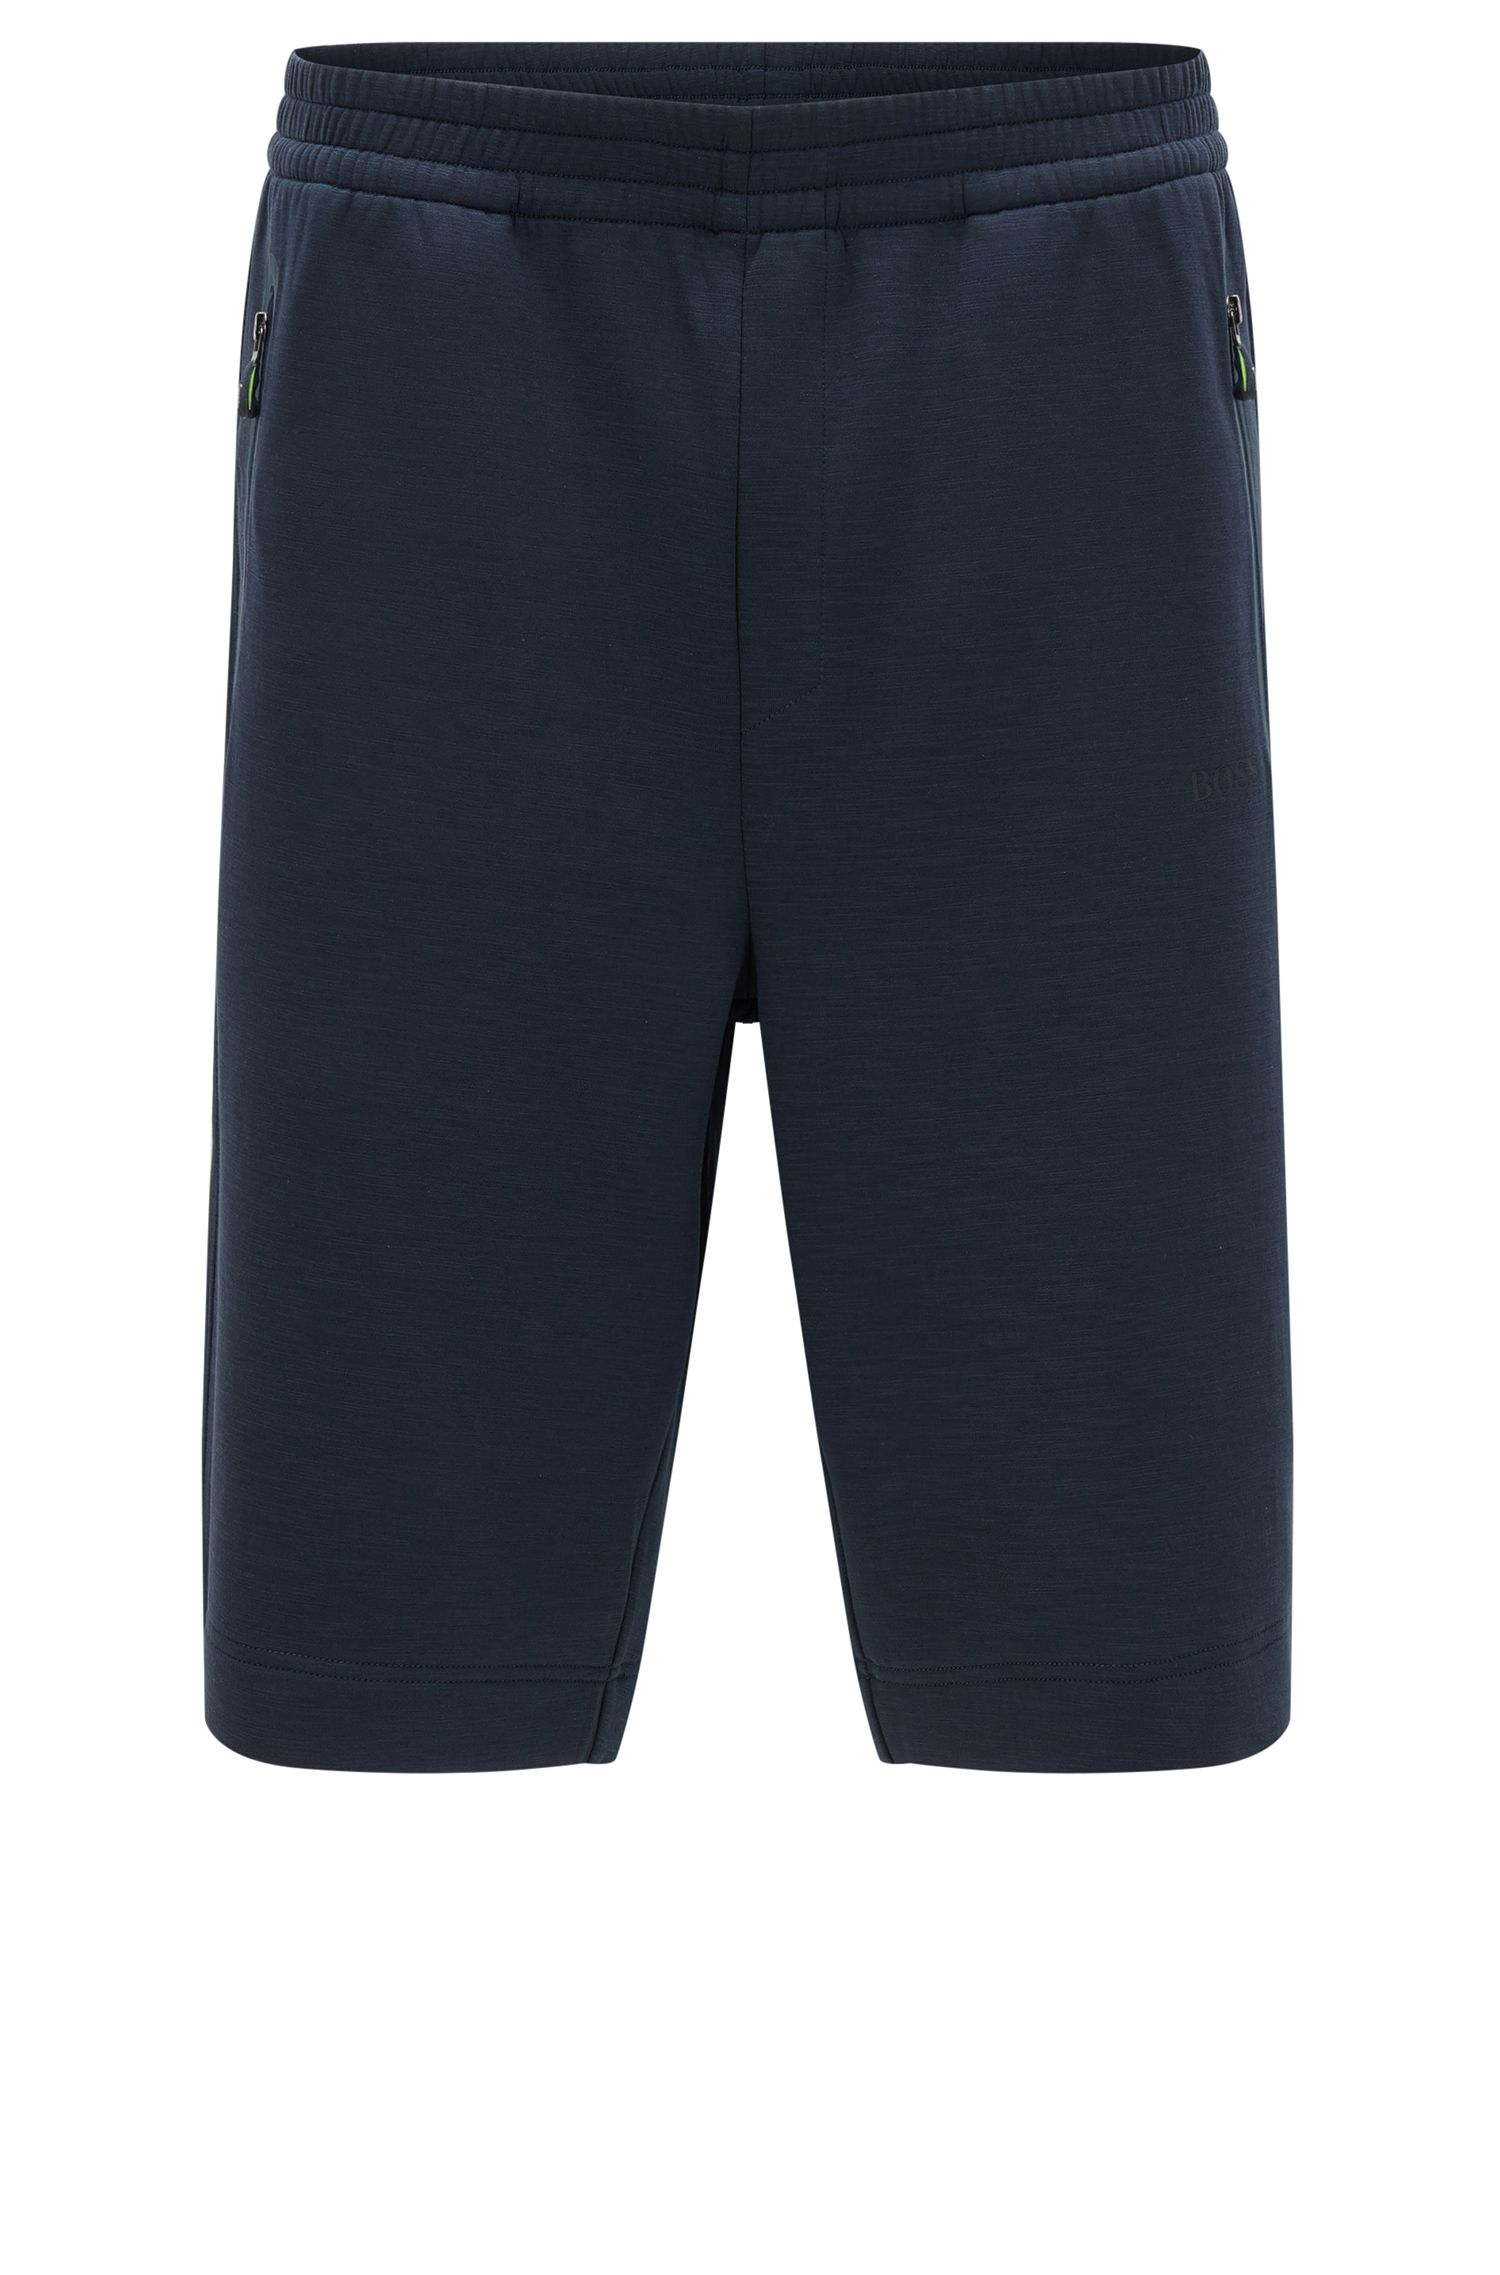 Jersey shorts in stretch cotton blend